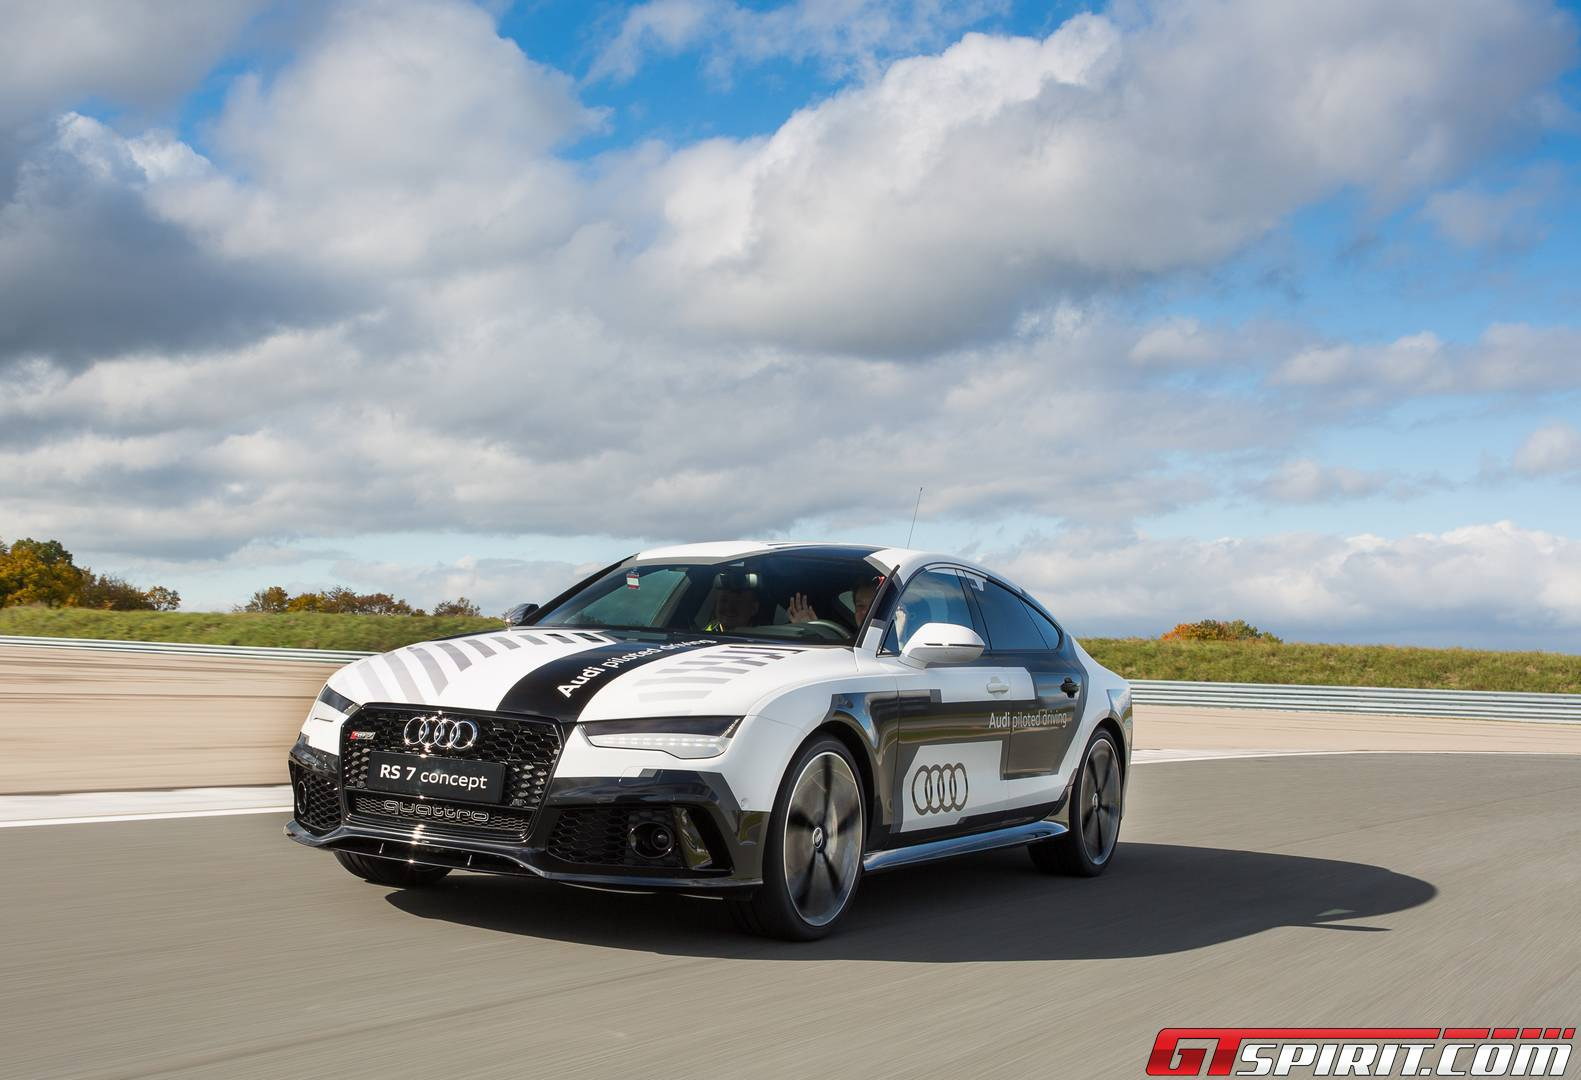 Audi A Piloted Driving Concept The Autobahn Review GTspirit - Audi piloted driving